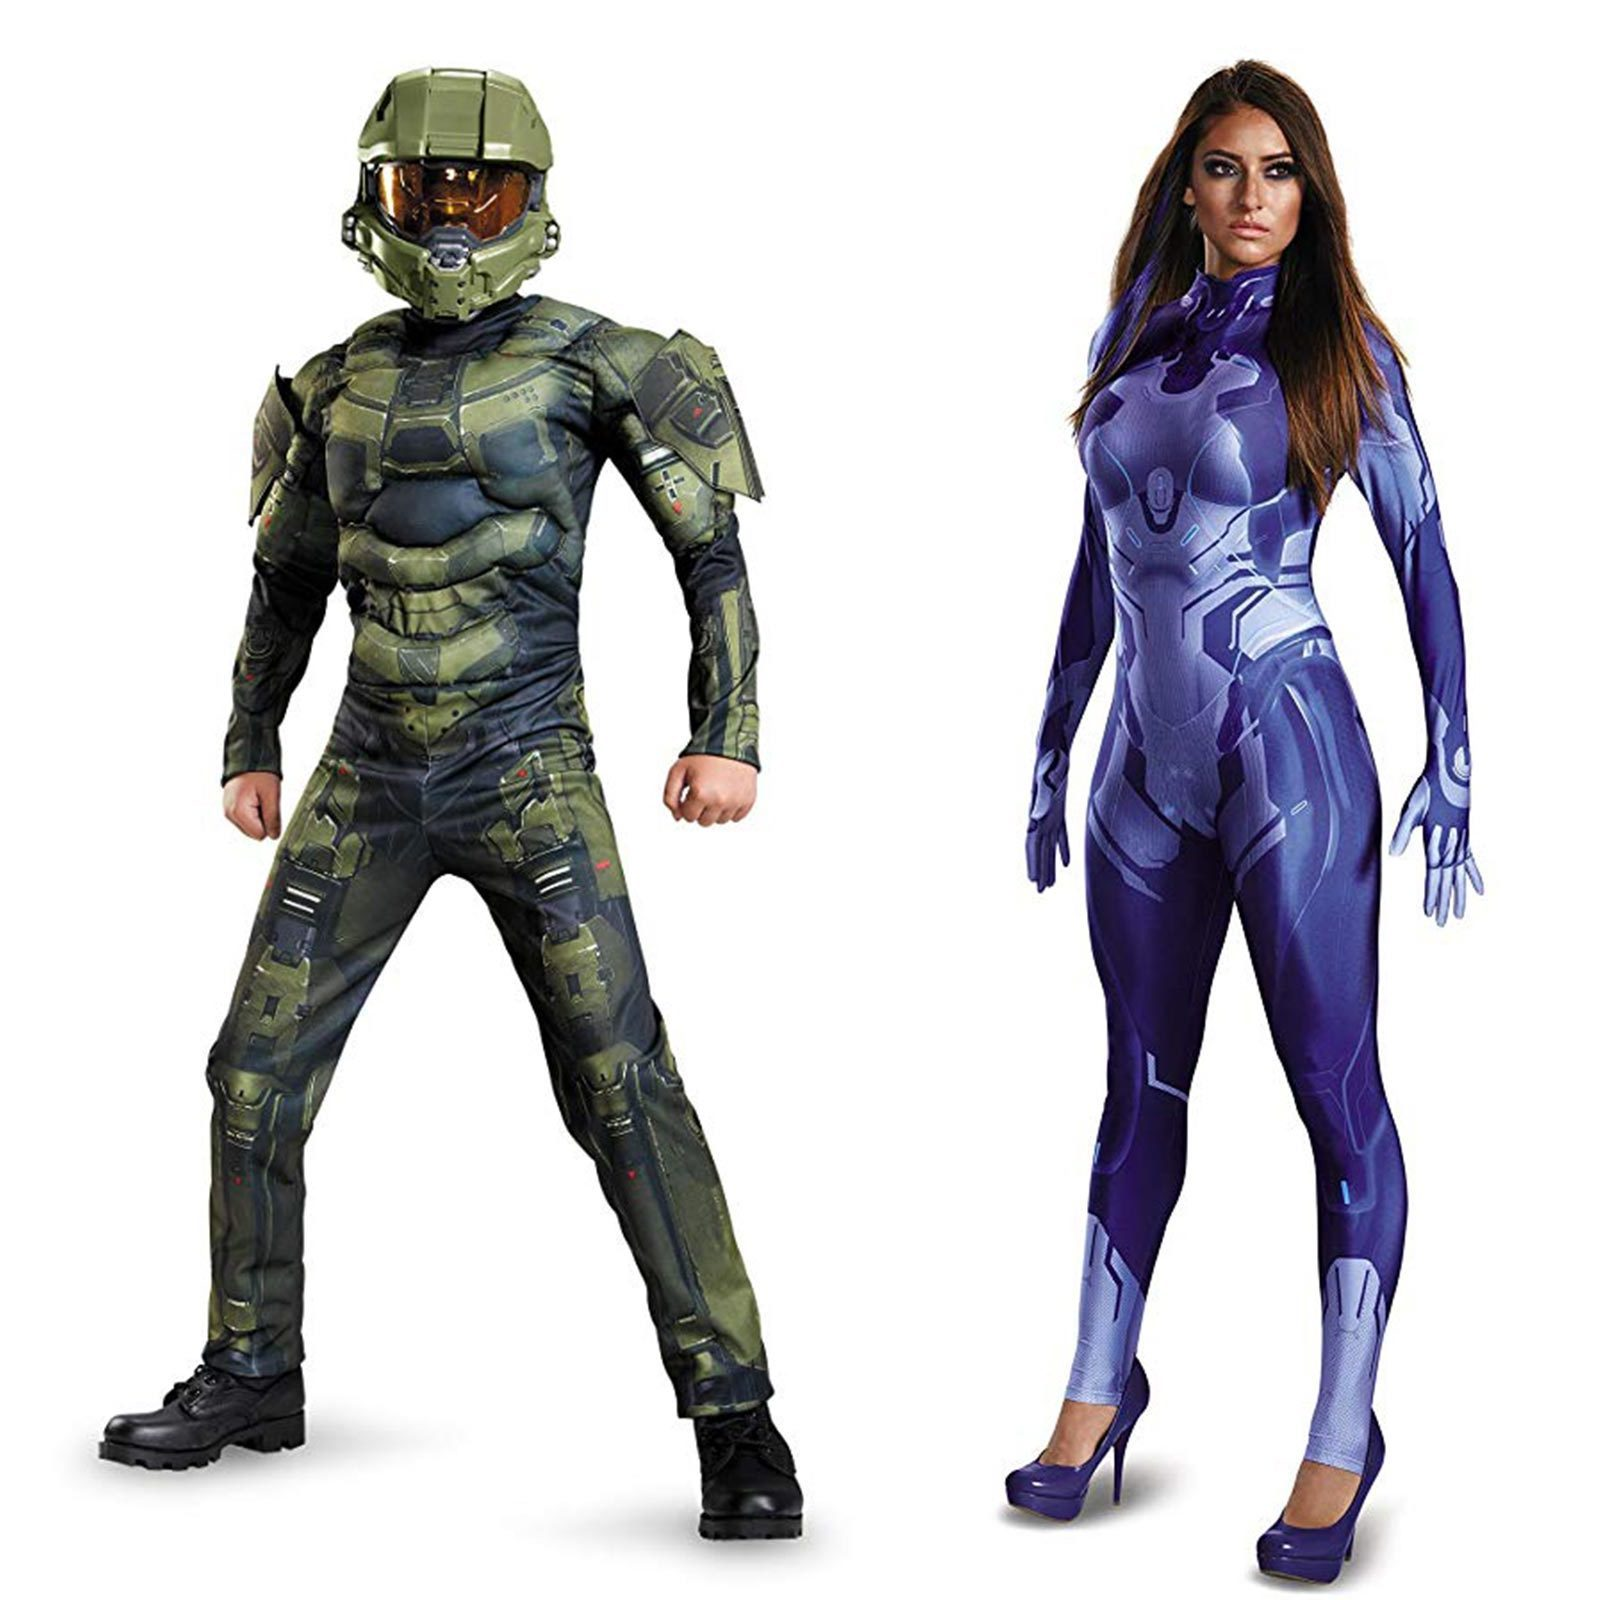 16a_Master-Chief-and-Cortana-from-Halo--Master-Chief-Collection